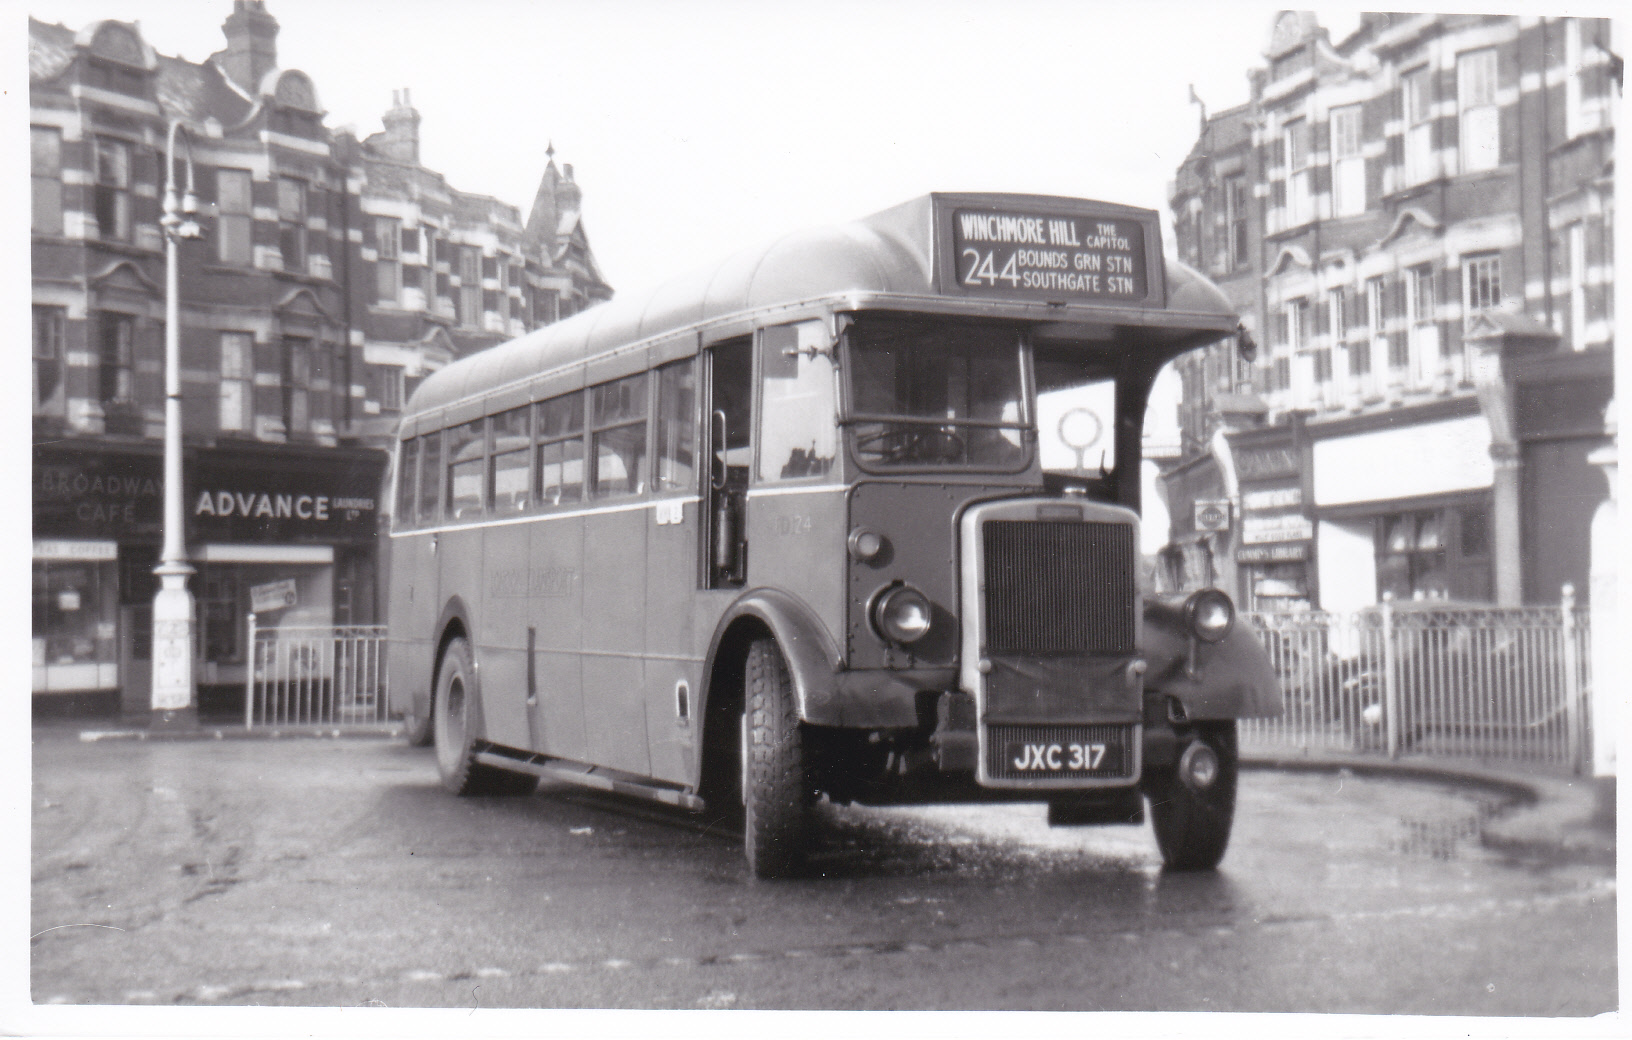 The 244 bus (TD 24), ran from Muswell Hill to Kingston from 1947 to 1953